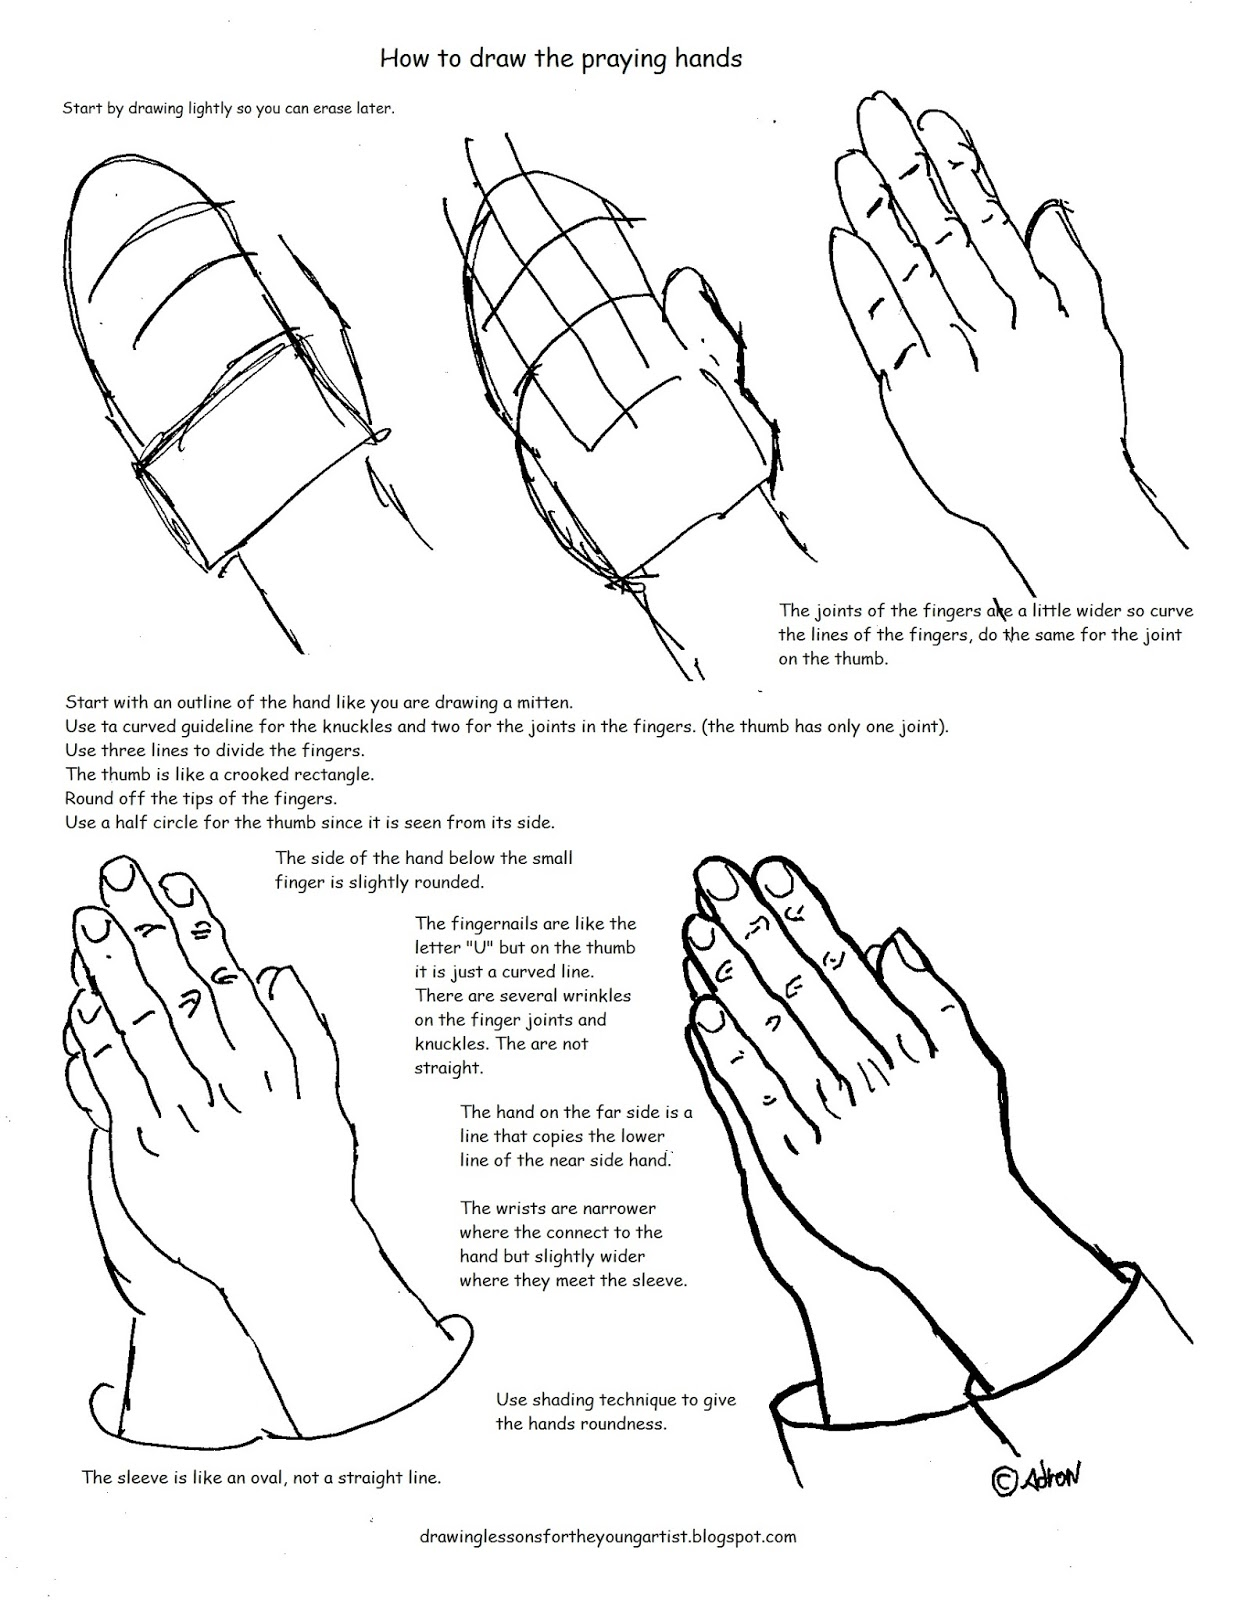 worksheet Joints Worksheet how to draw worksheets for the young artist printable praying hands worksheet